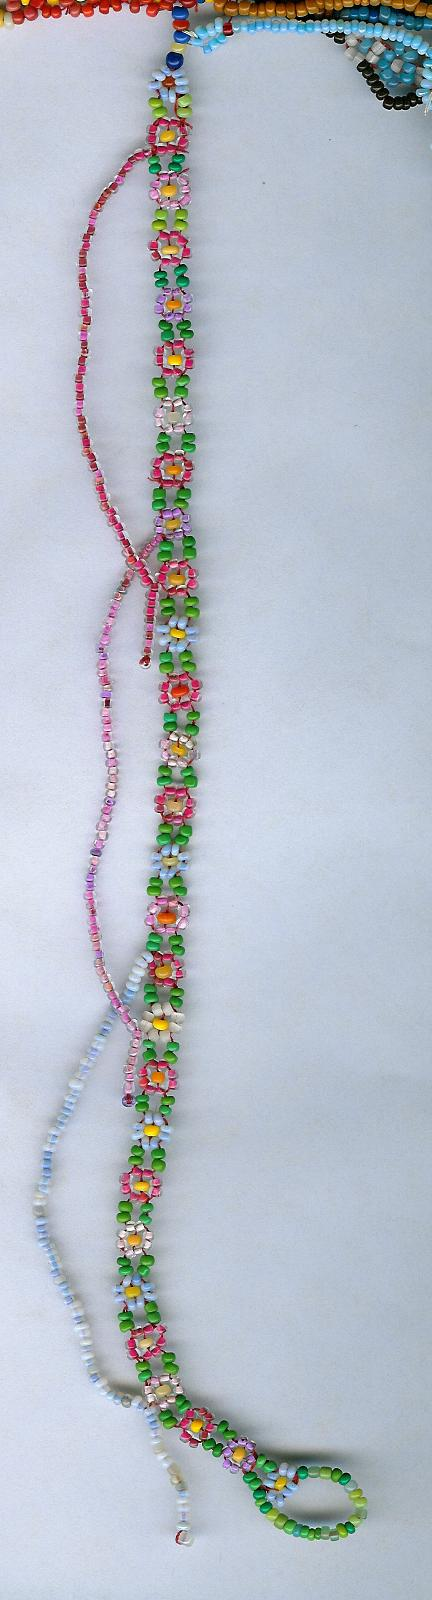 Rosy Lazy Daisy Chain by Refiner